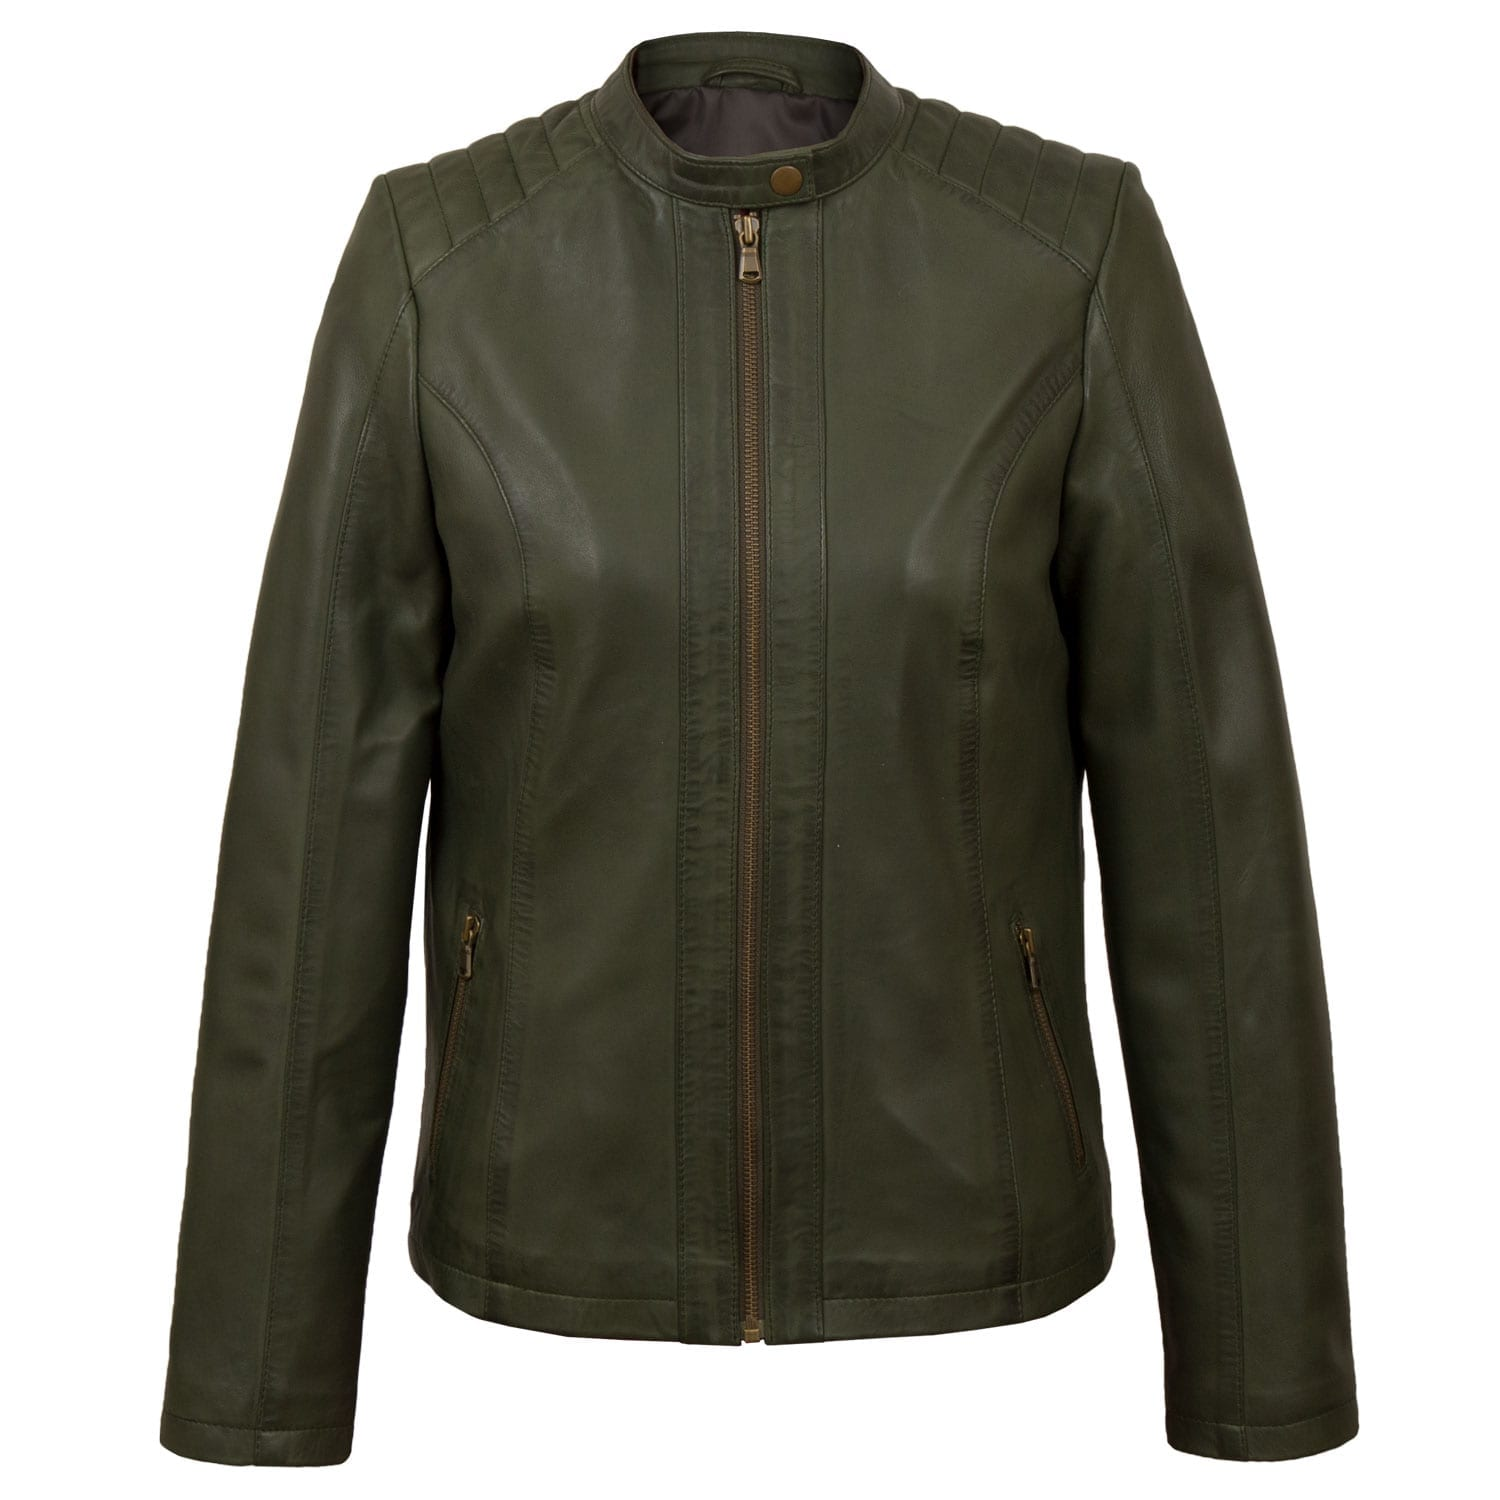 Ladies Green leather jacket Trudy